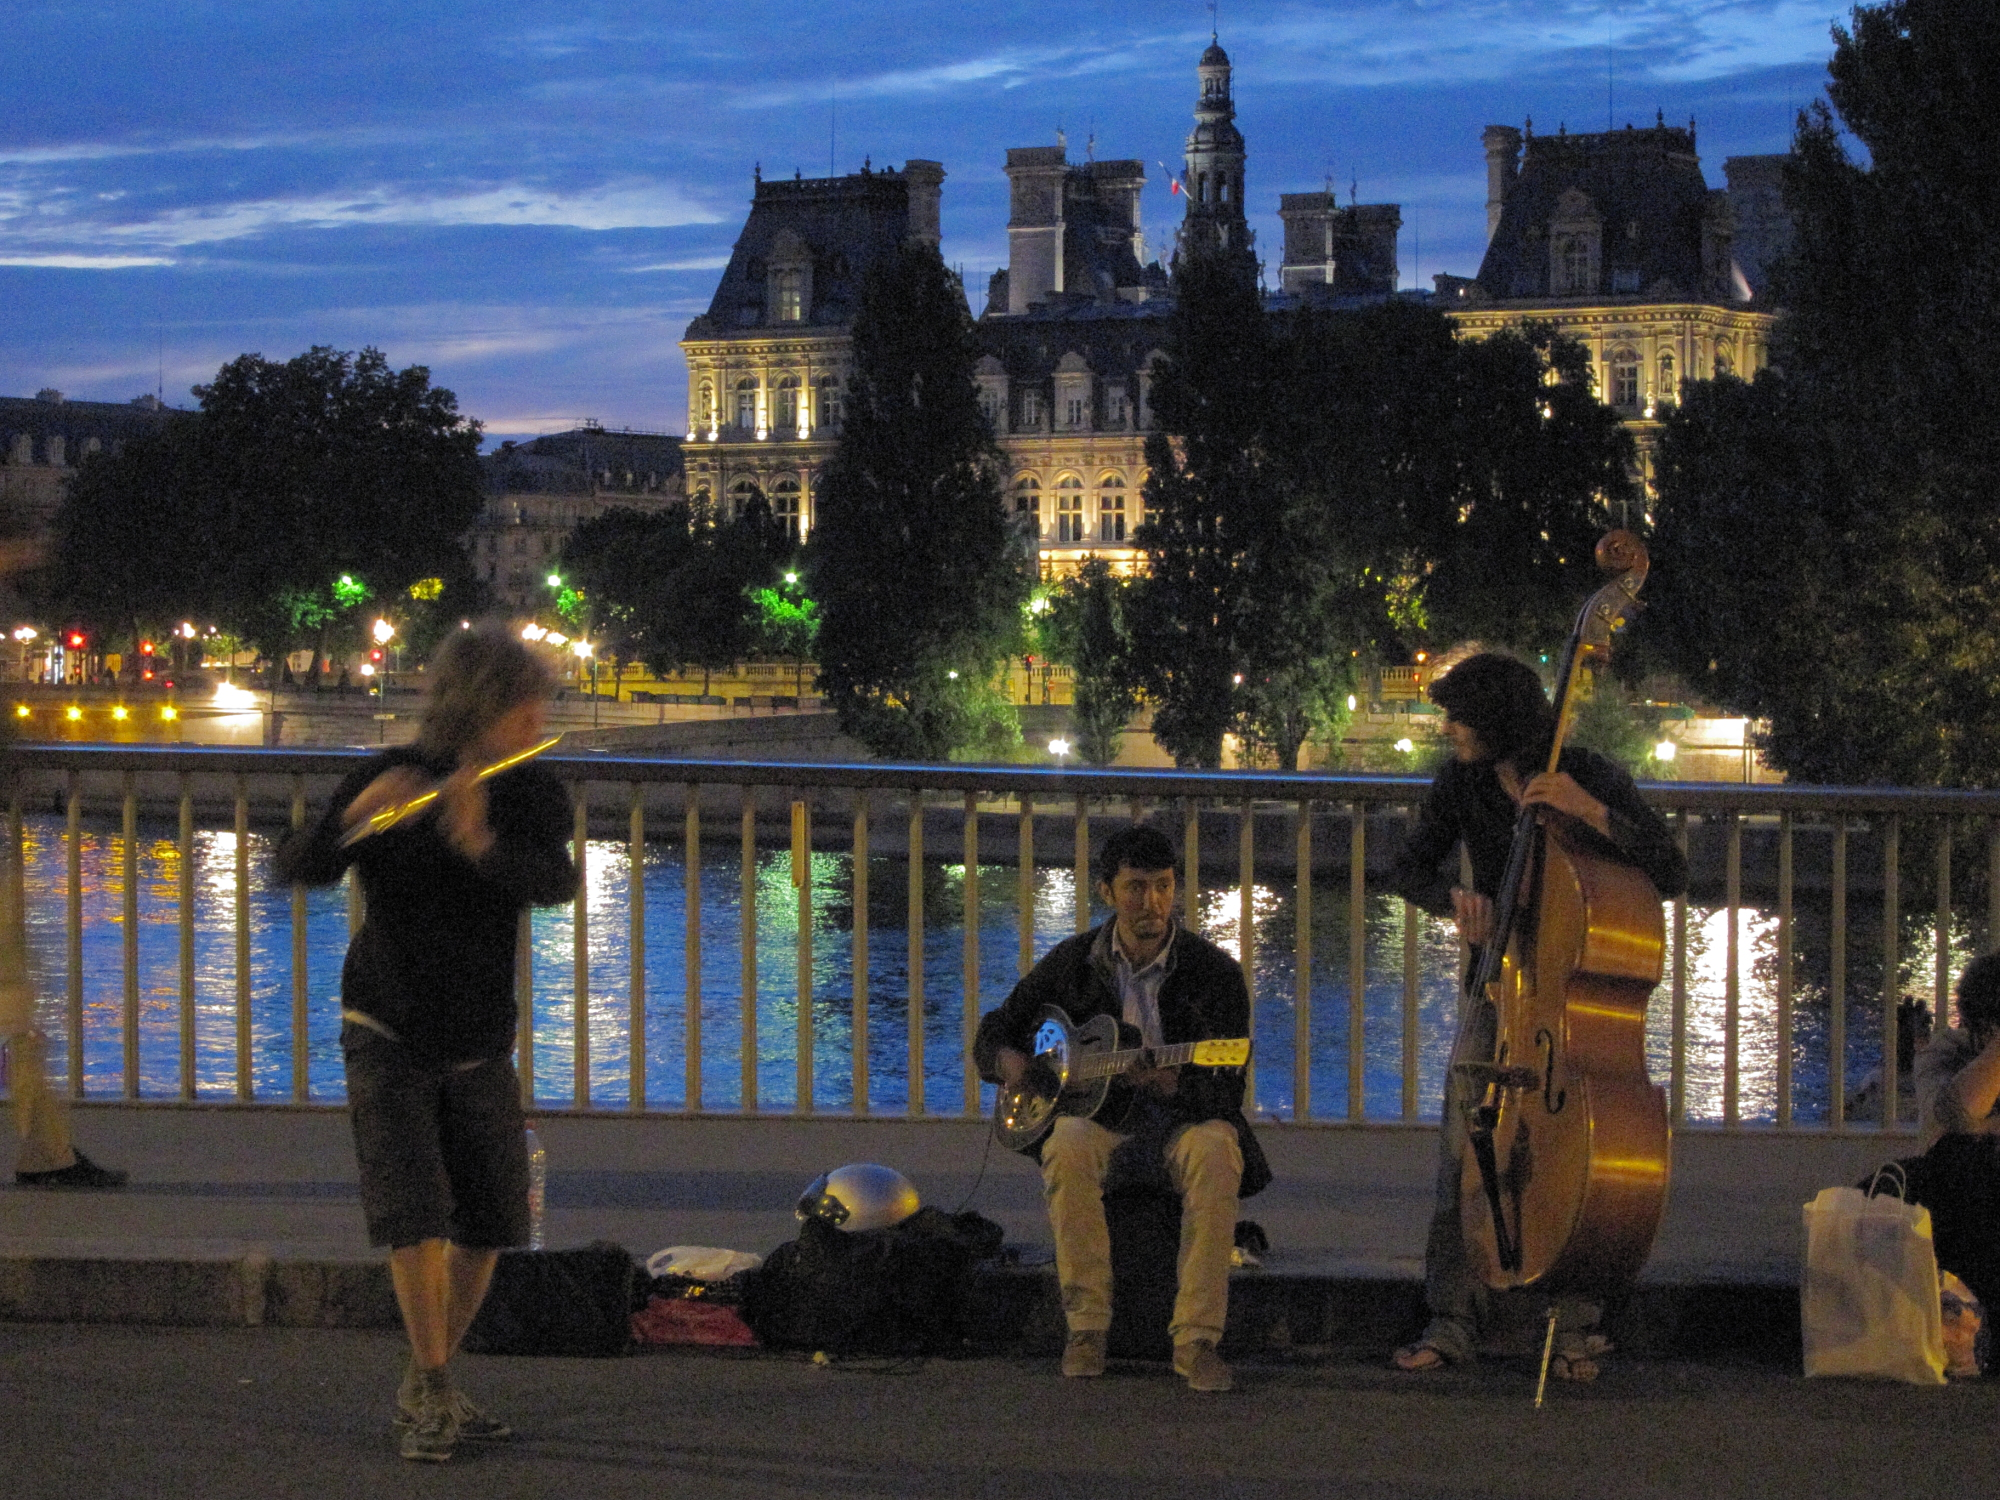 Street musicians on Pont Saint-Louis, between L'île Saint-Louis and L'île de la Cité.